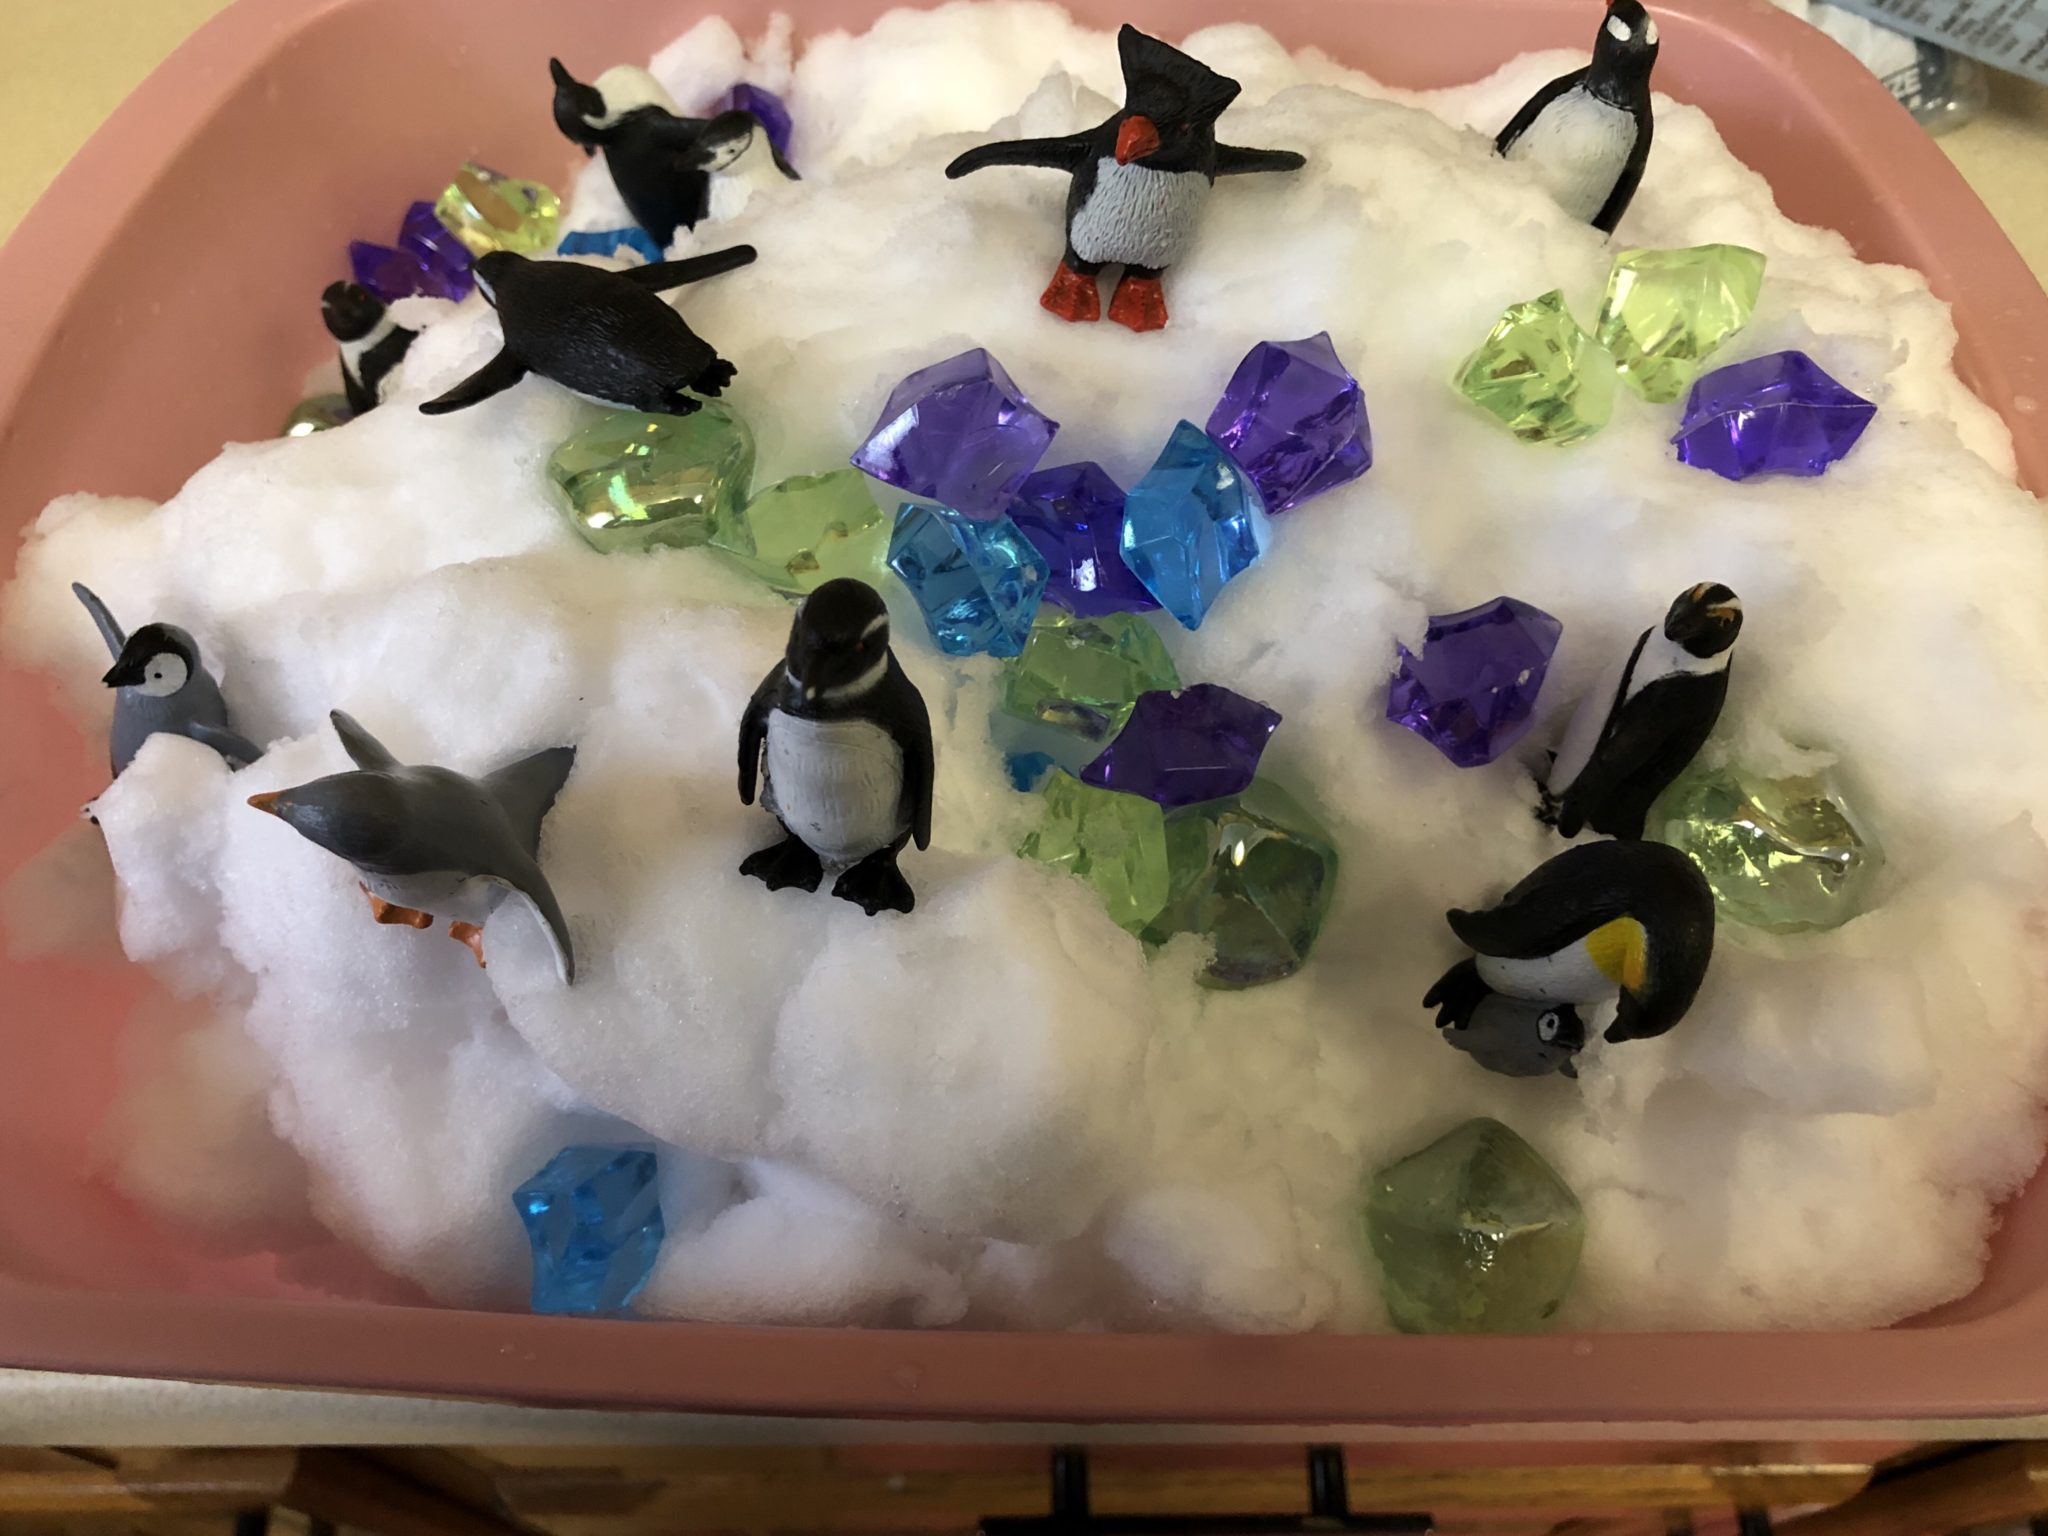 Snow sensory tub with stones and penguins